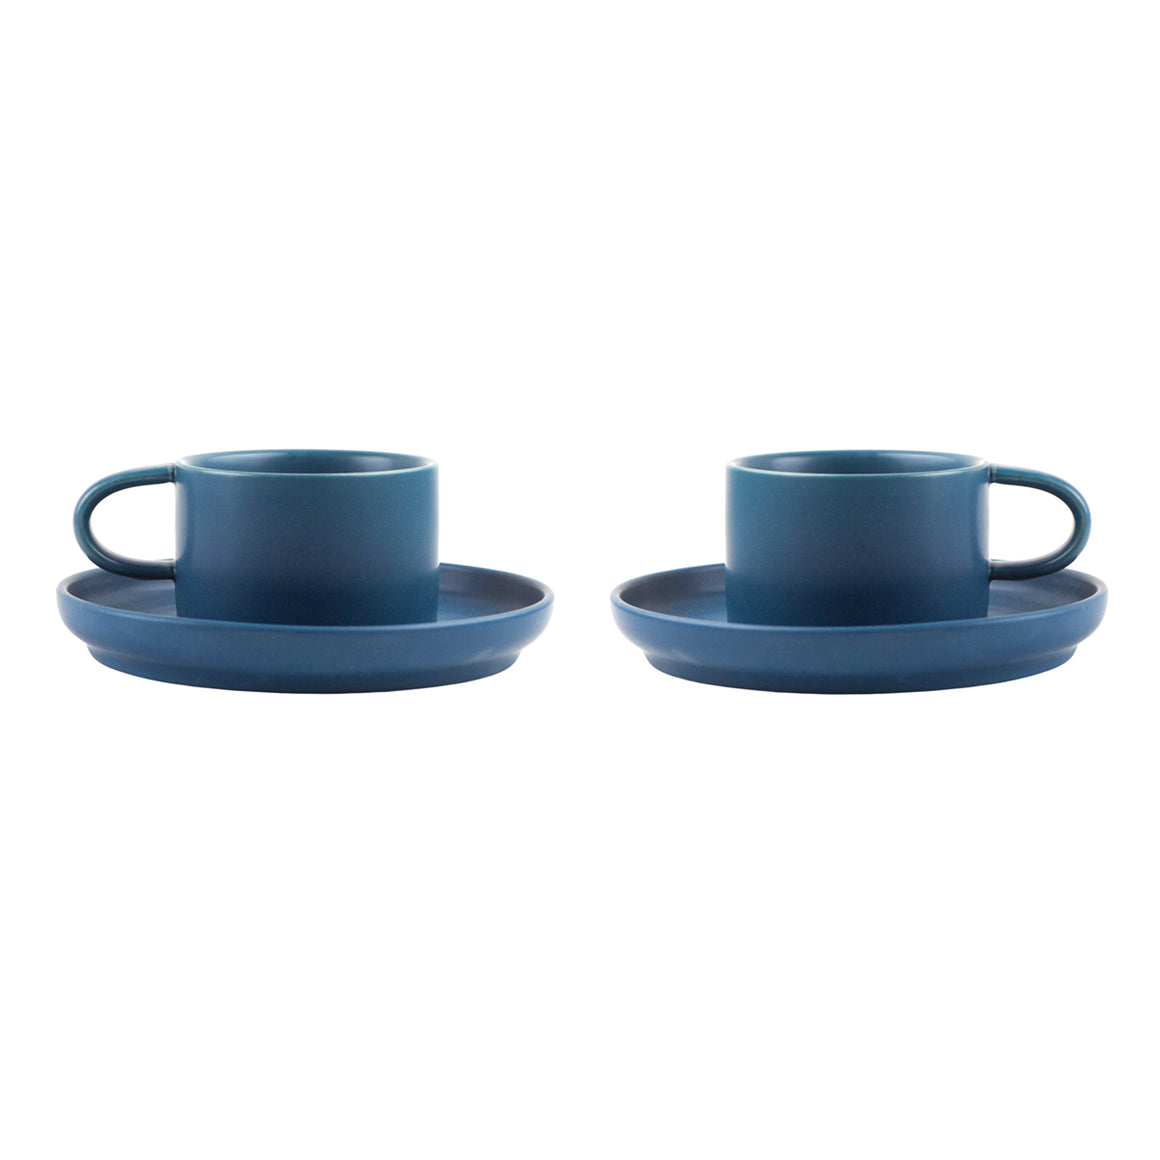 Nordic Design Cup & Saucer Set, 2 pack - Dark Blue